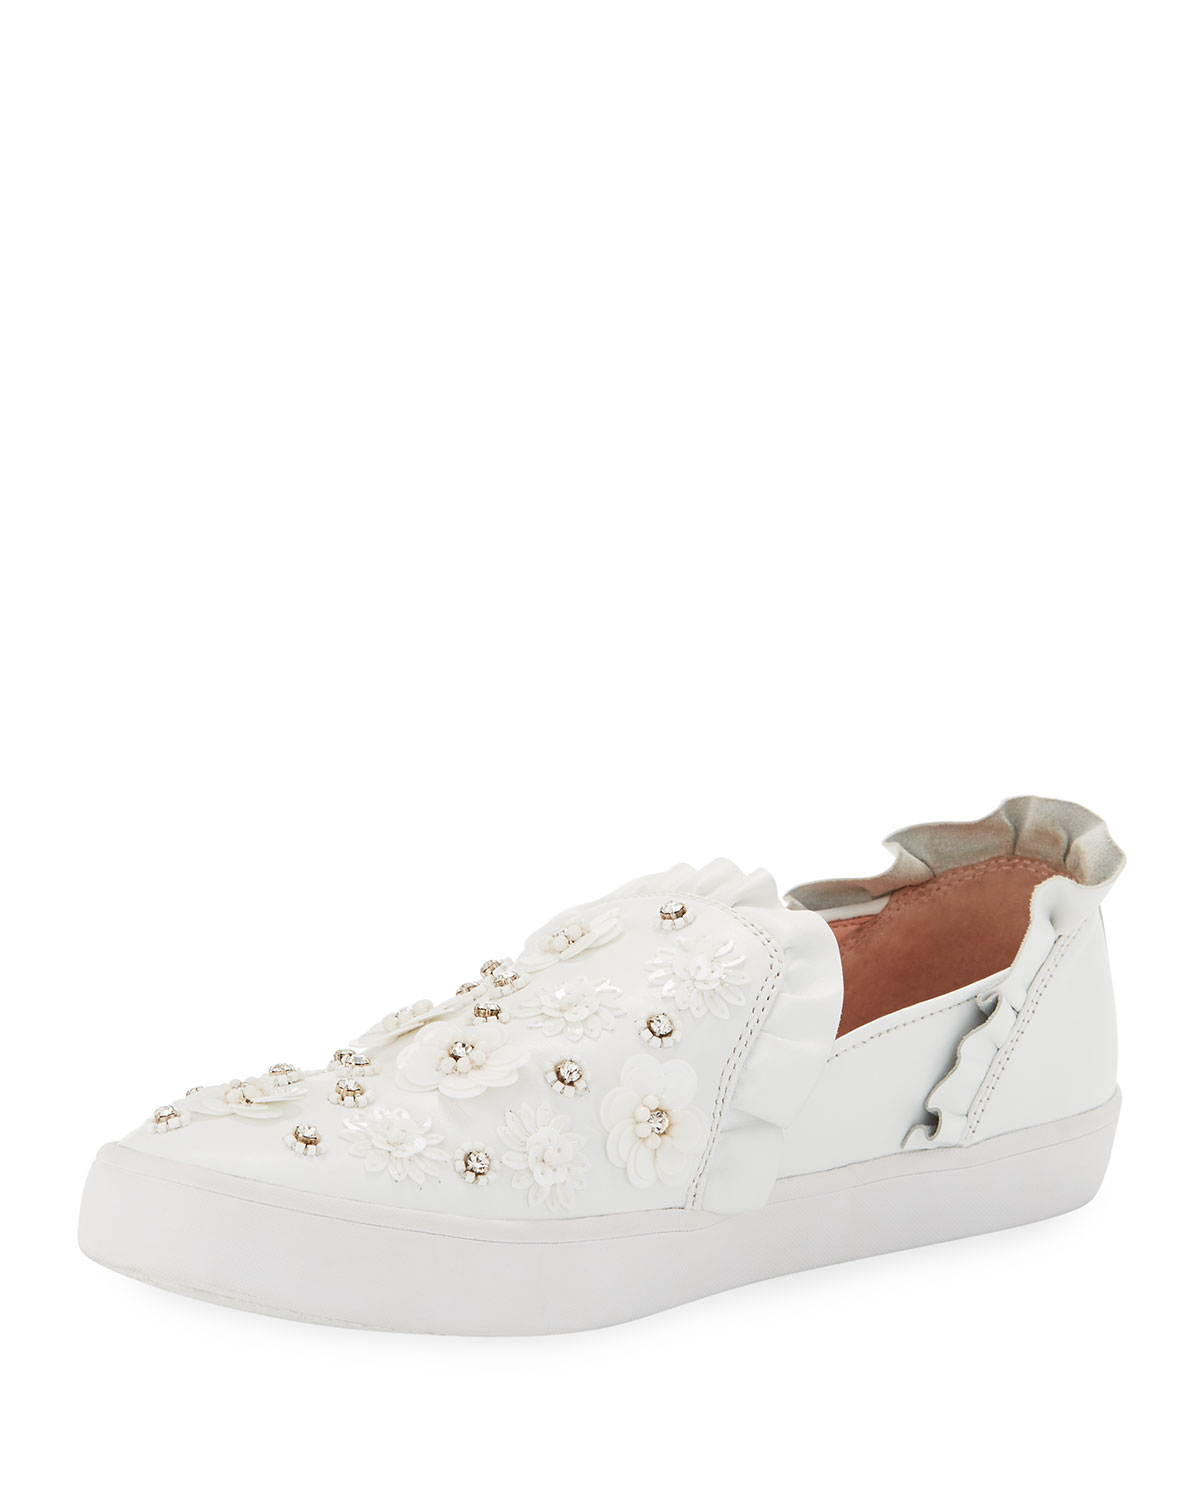 2c59c4db48a4 kate spade new york louise floral-embellished sneaker